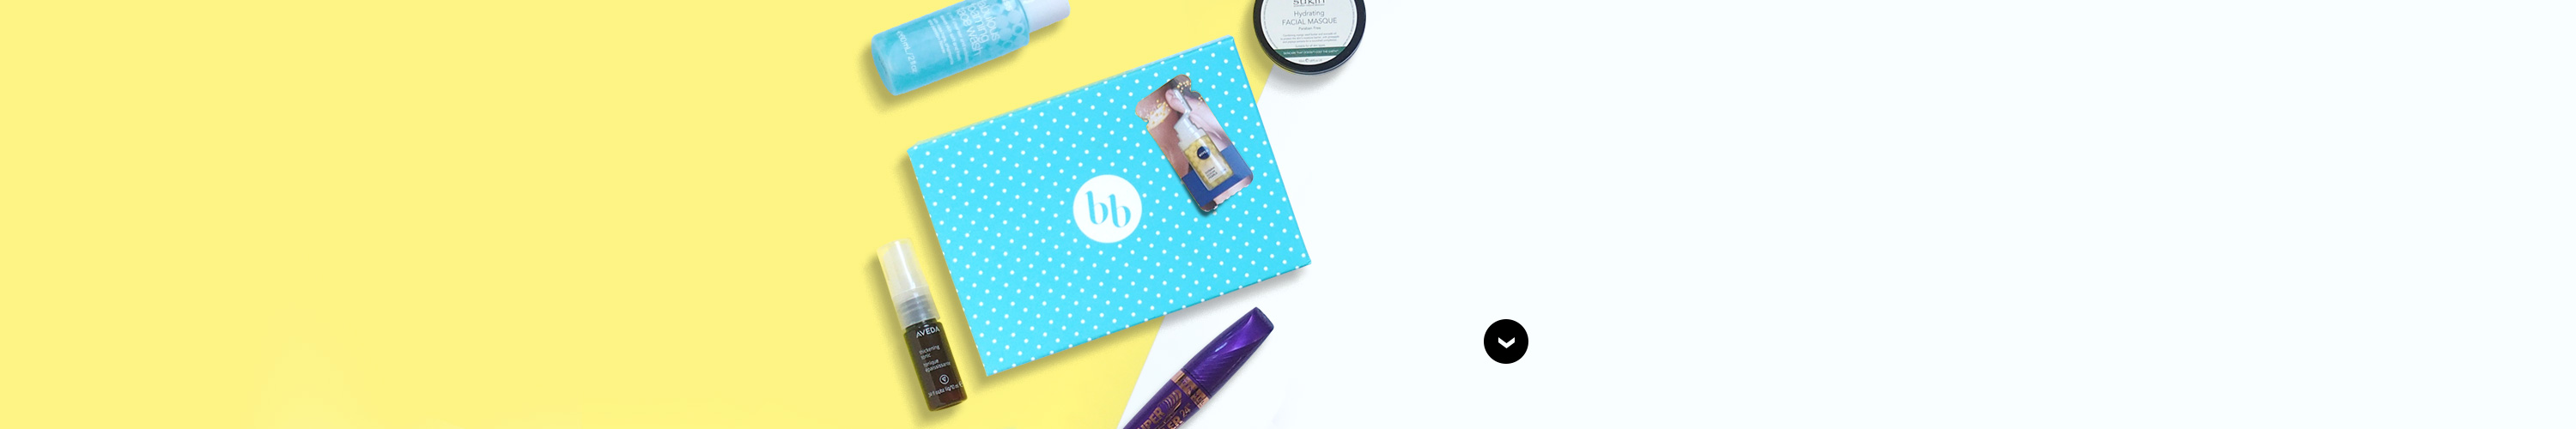 Join bellabox and get a beauty box delivered to you